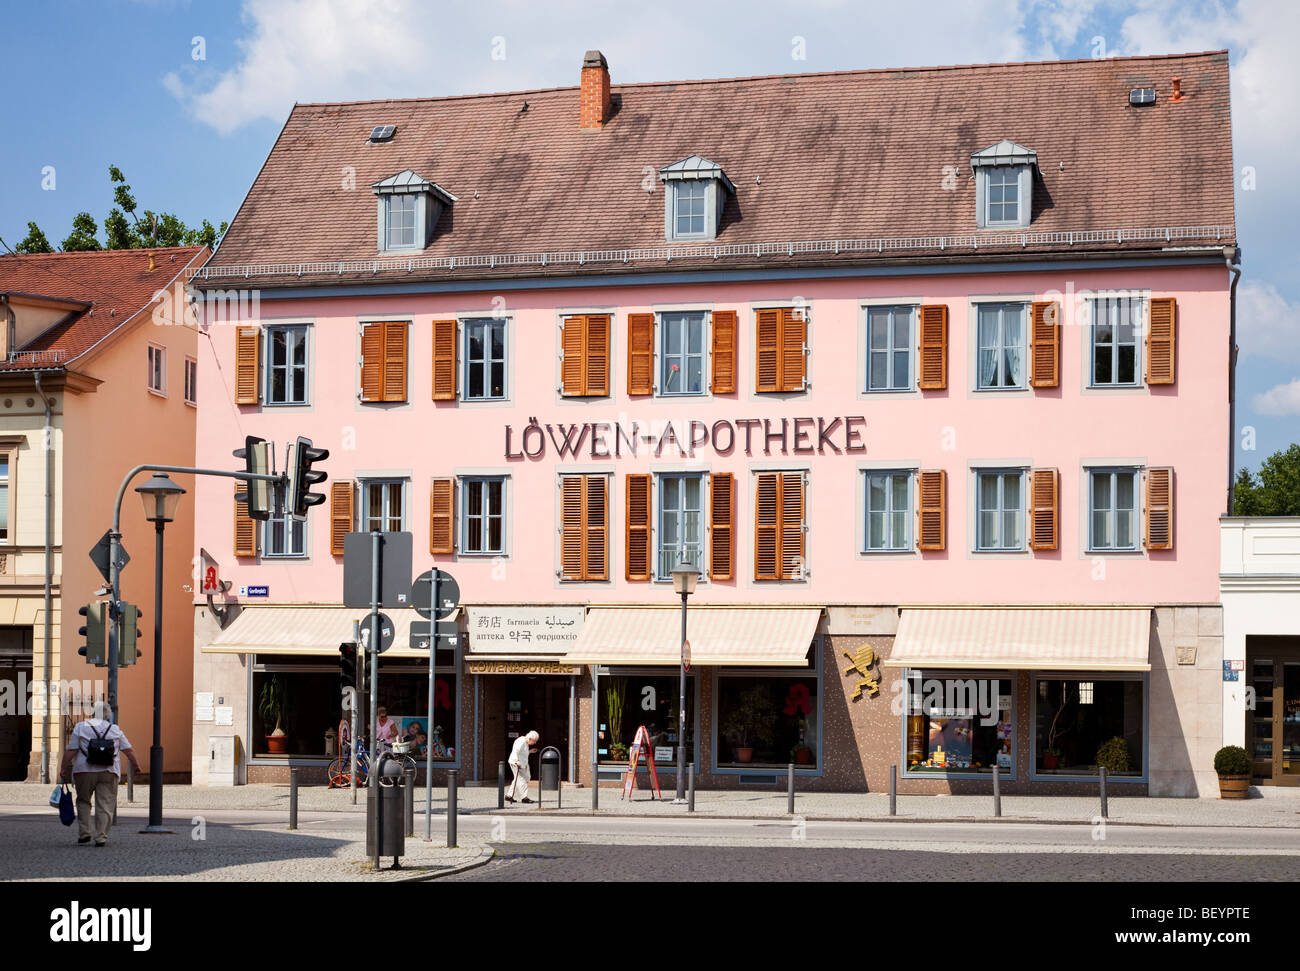 Apotheke chemist shop apothecary in Weimar, Germany, Europe - Stock Image